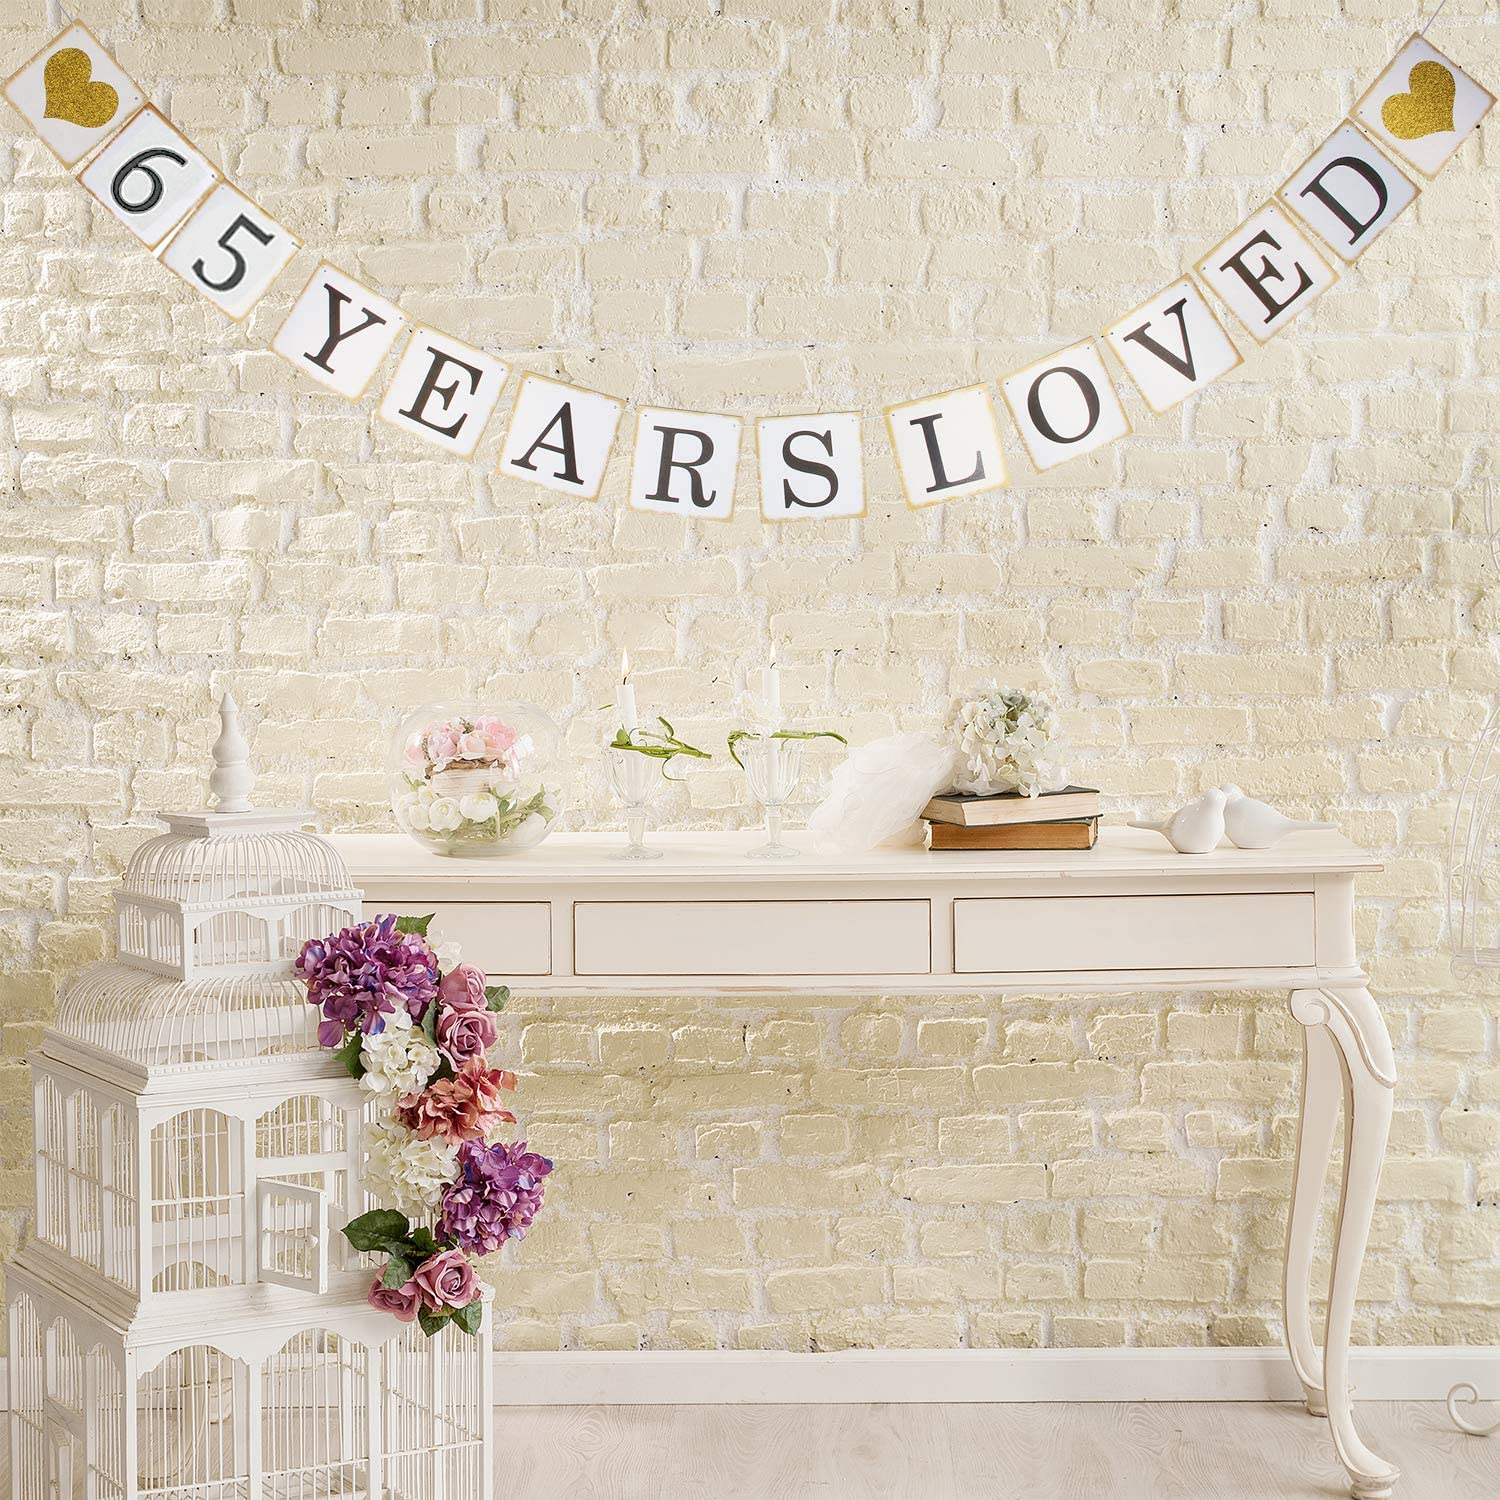 65TH Birthday Party 65th Anniversary Party Decoration Bunting (Gold and White) Hatcher lee 65 Years Loved Banner 65